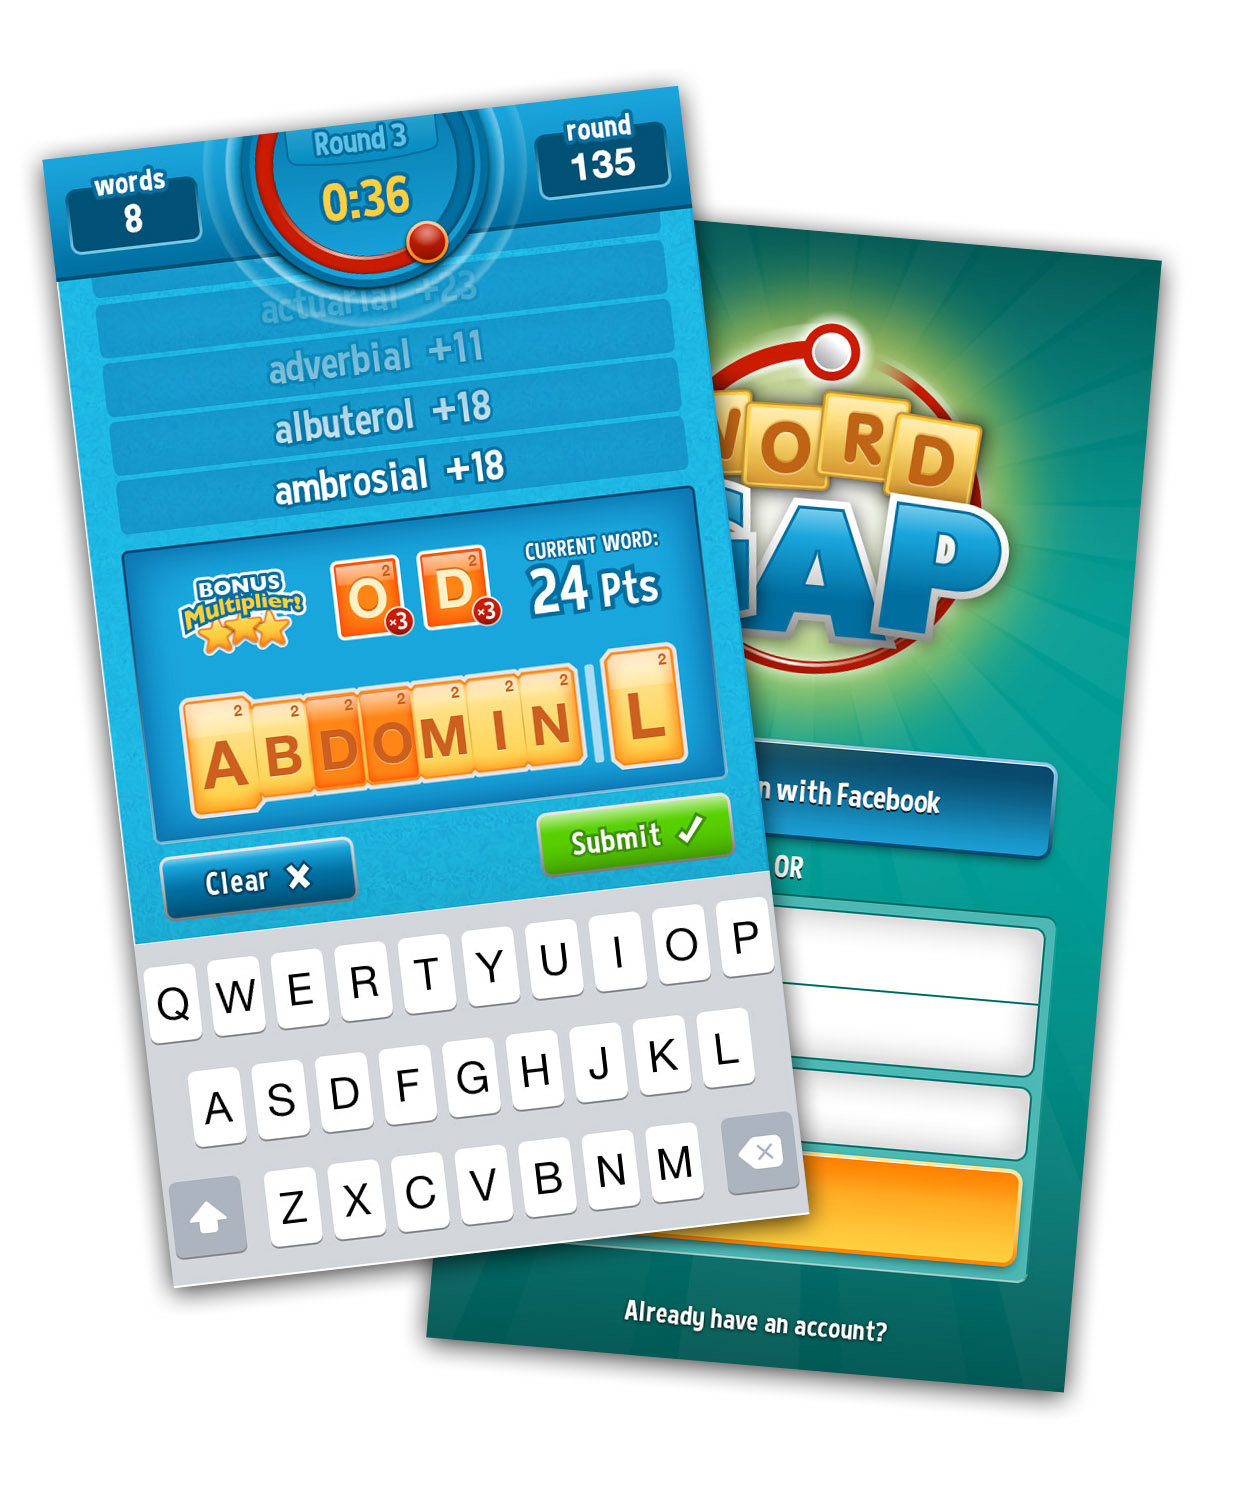 Wordgap screenshots